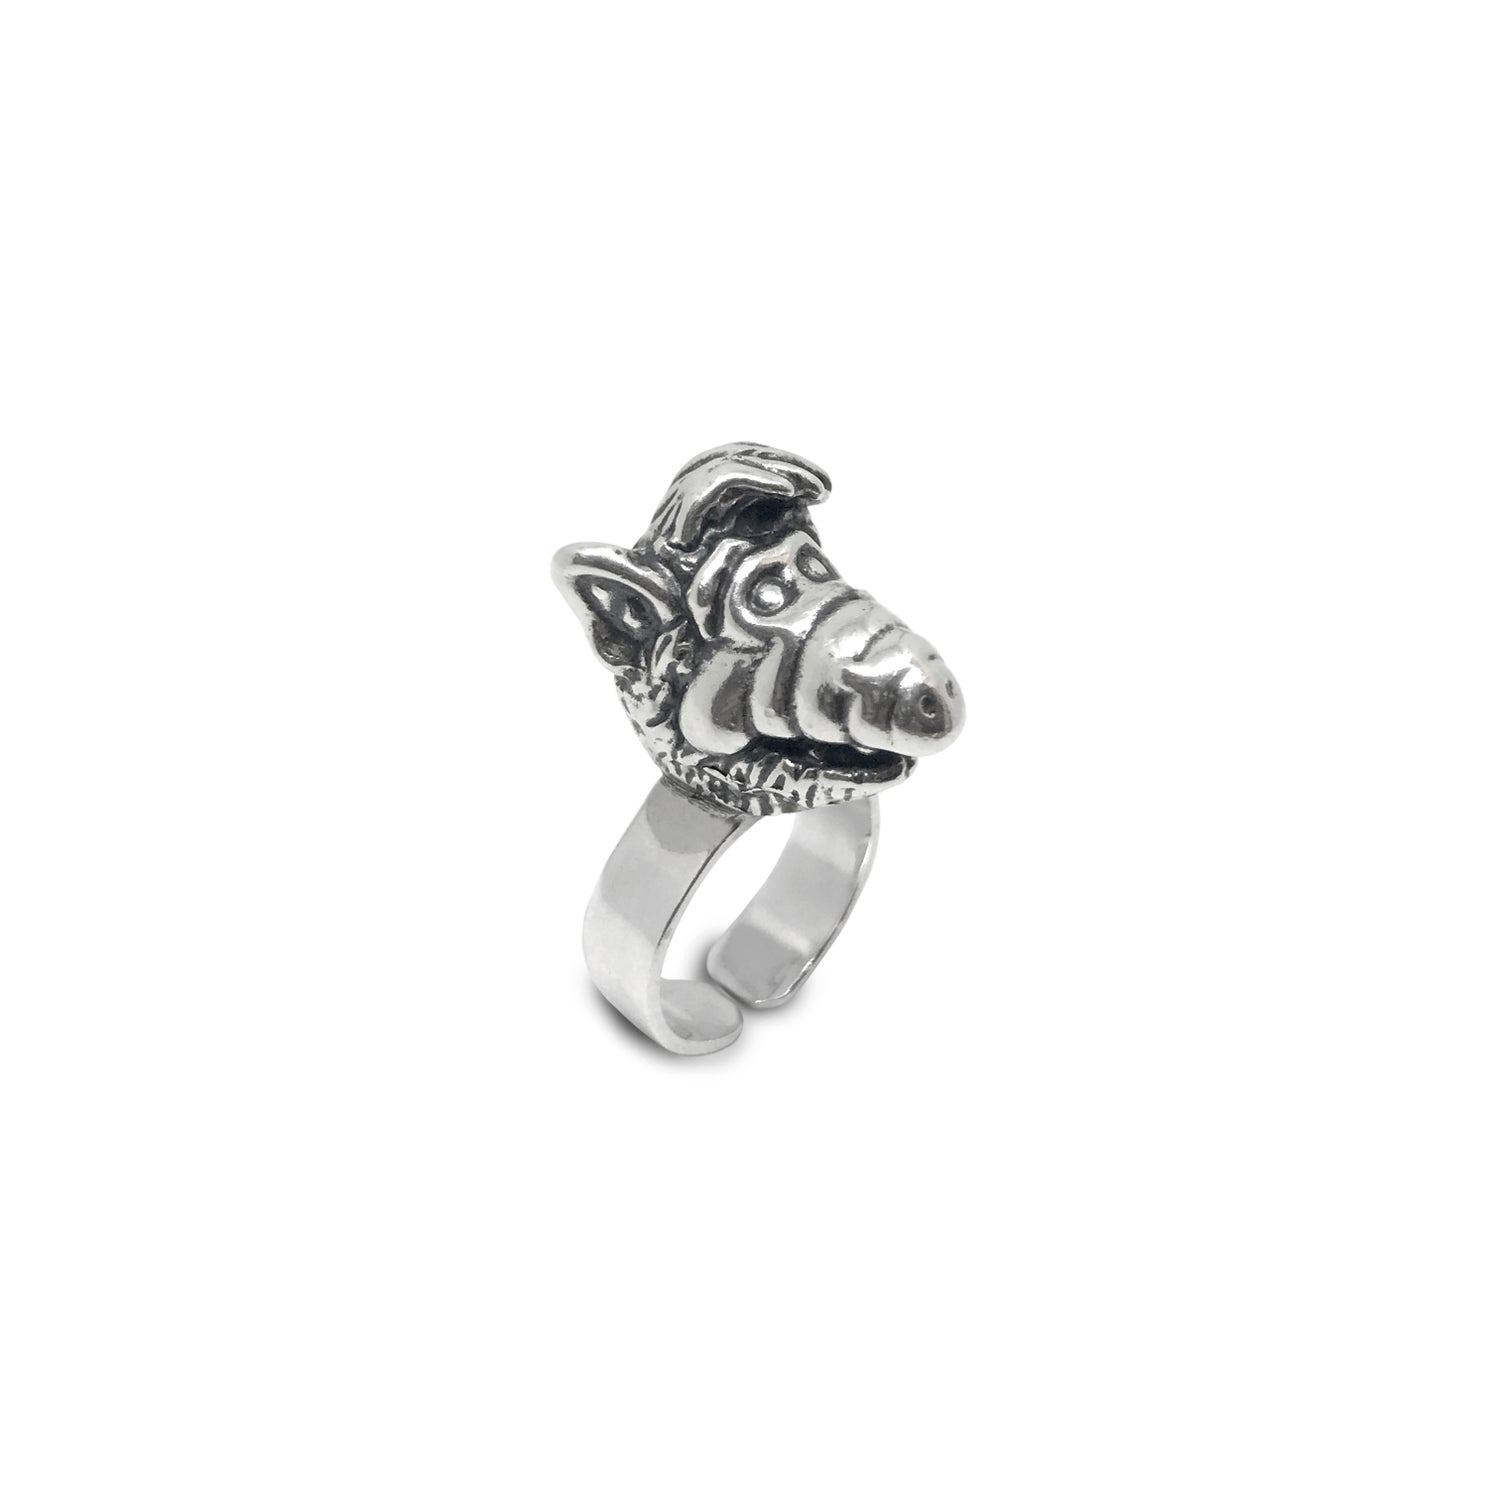 Image of ALF Silver Ring  / Anillo ALF plata